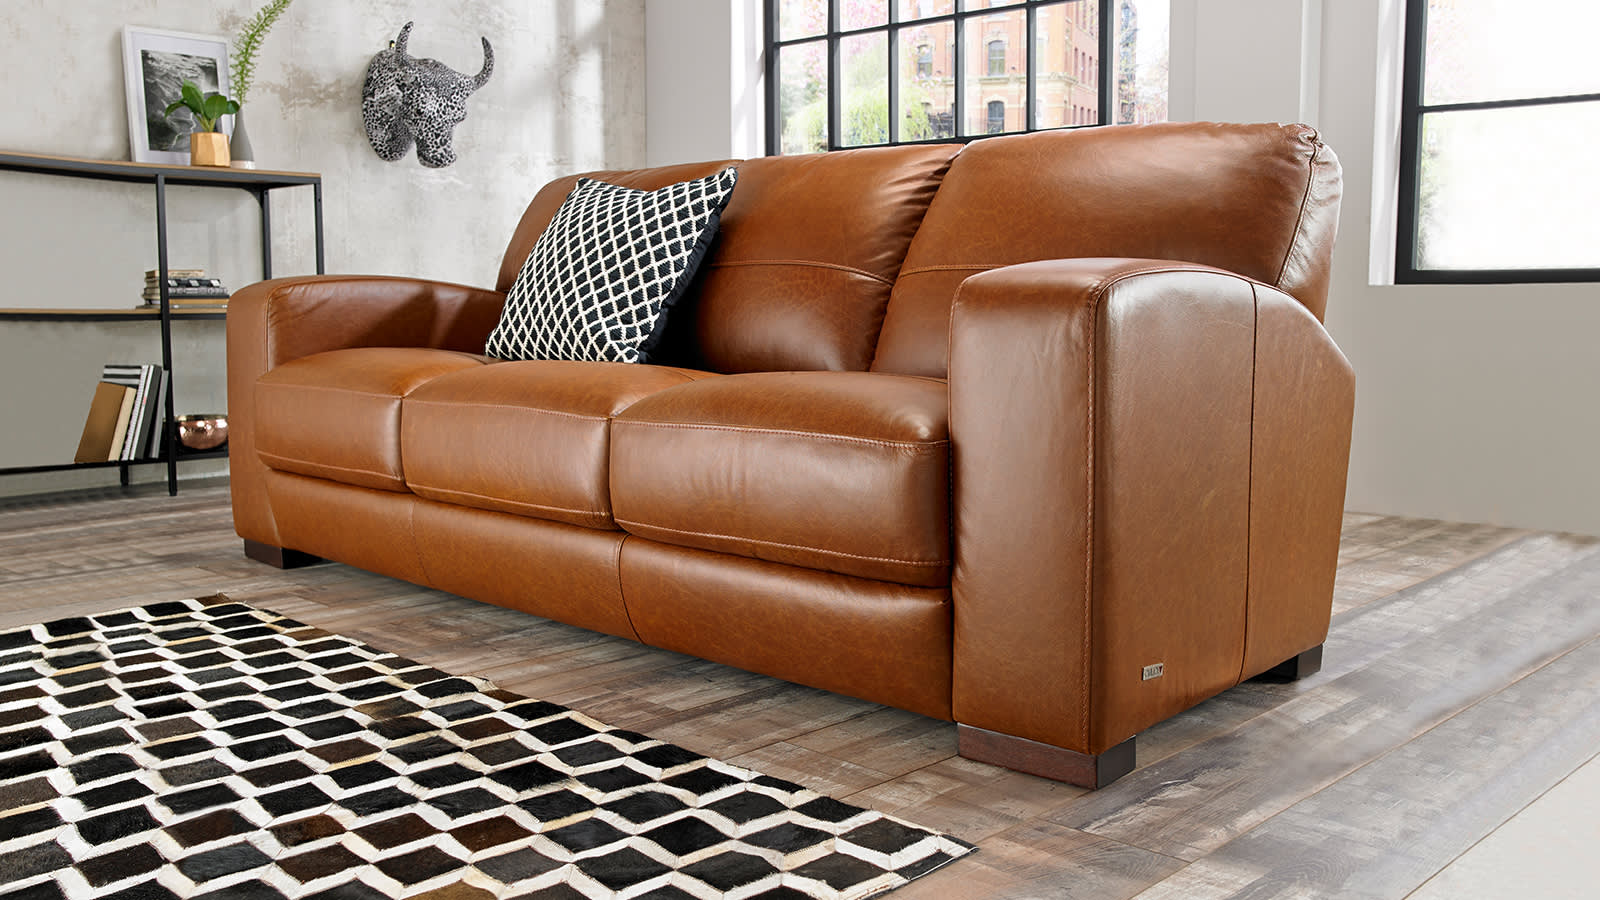 labor of reversible design furniture size chairs sets me near wayfair sale couch day room sectional living large full patio clearance